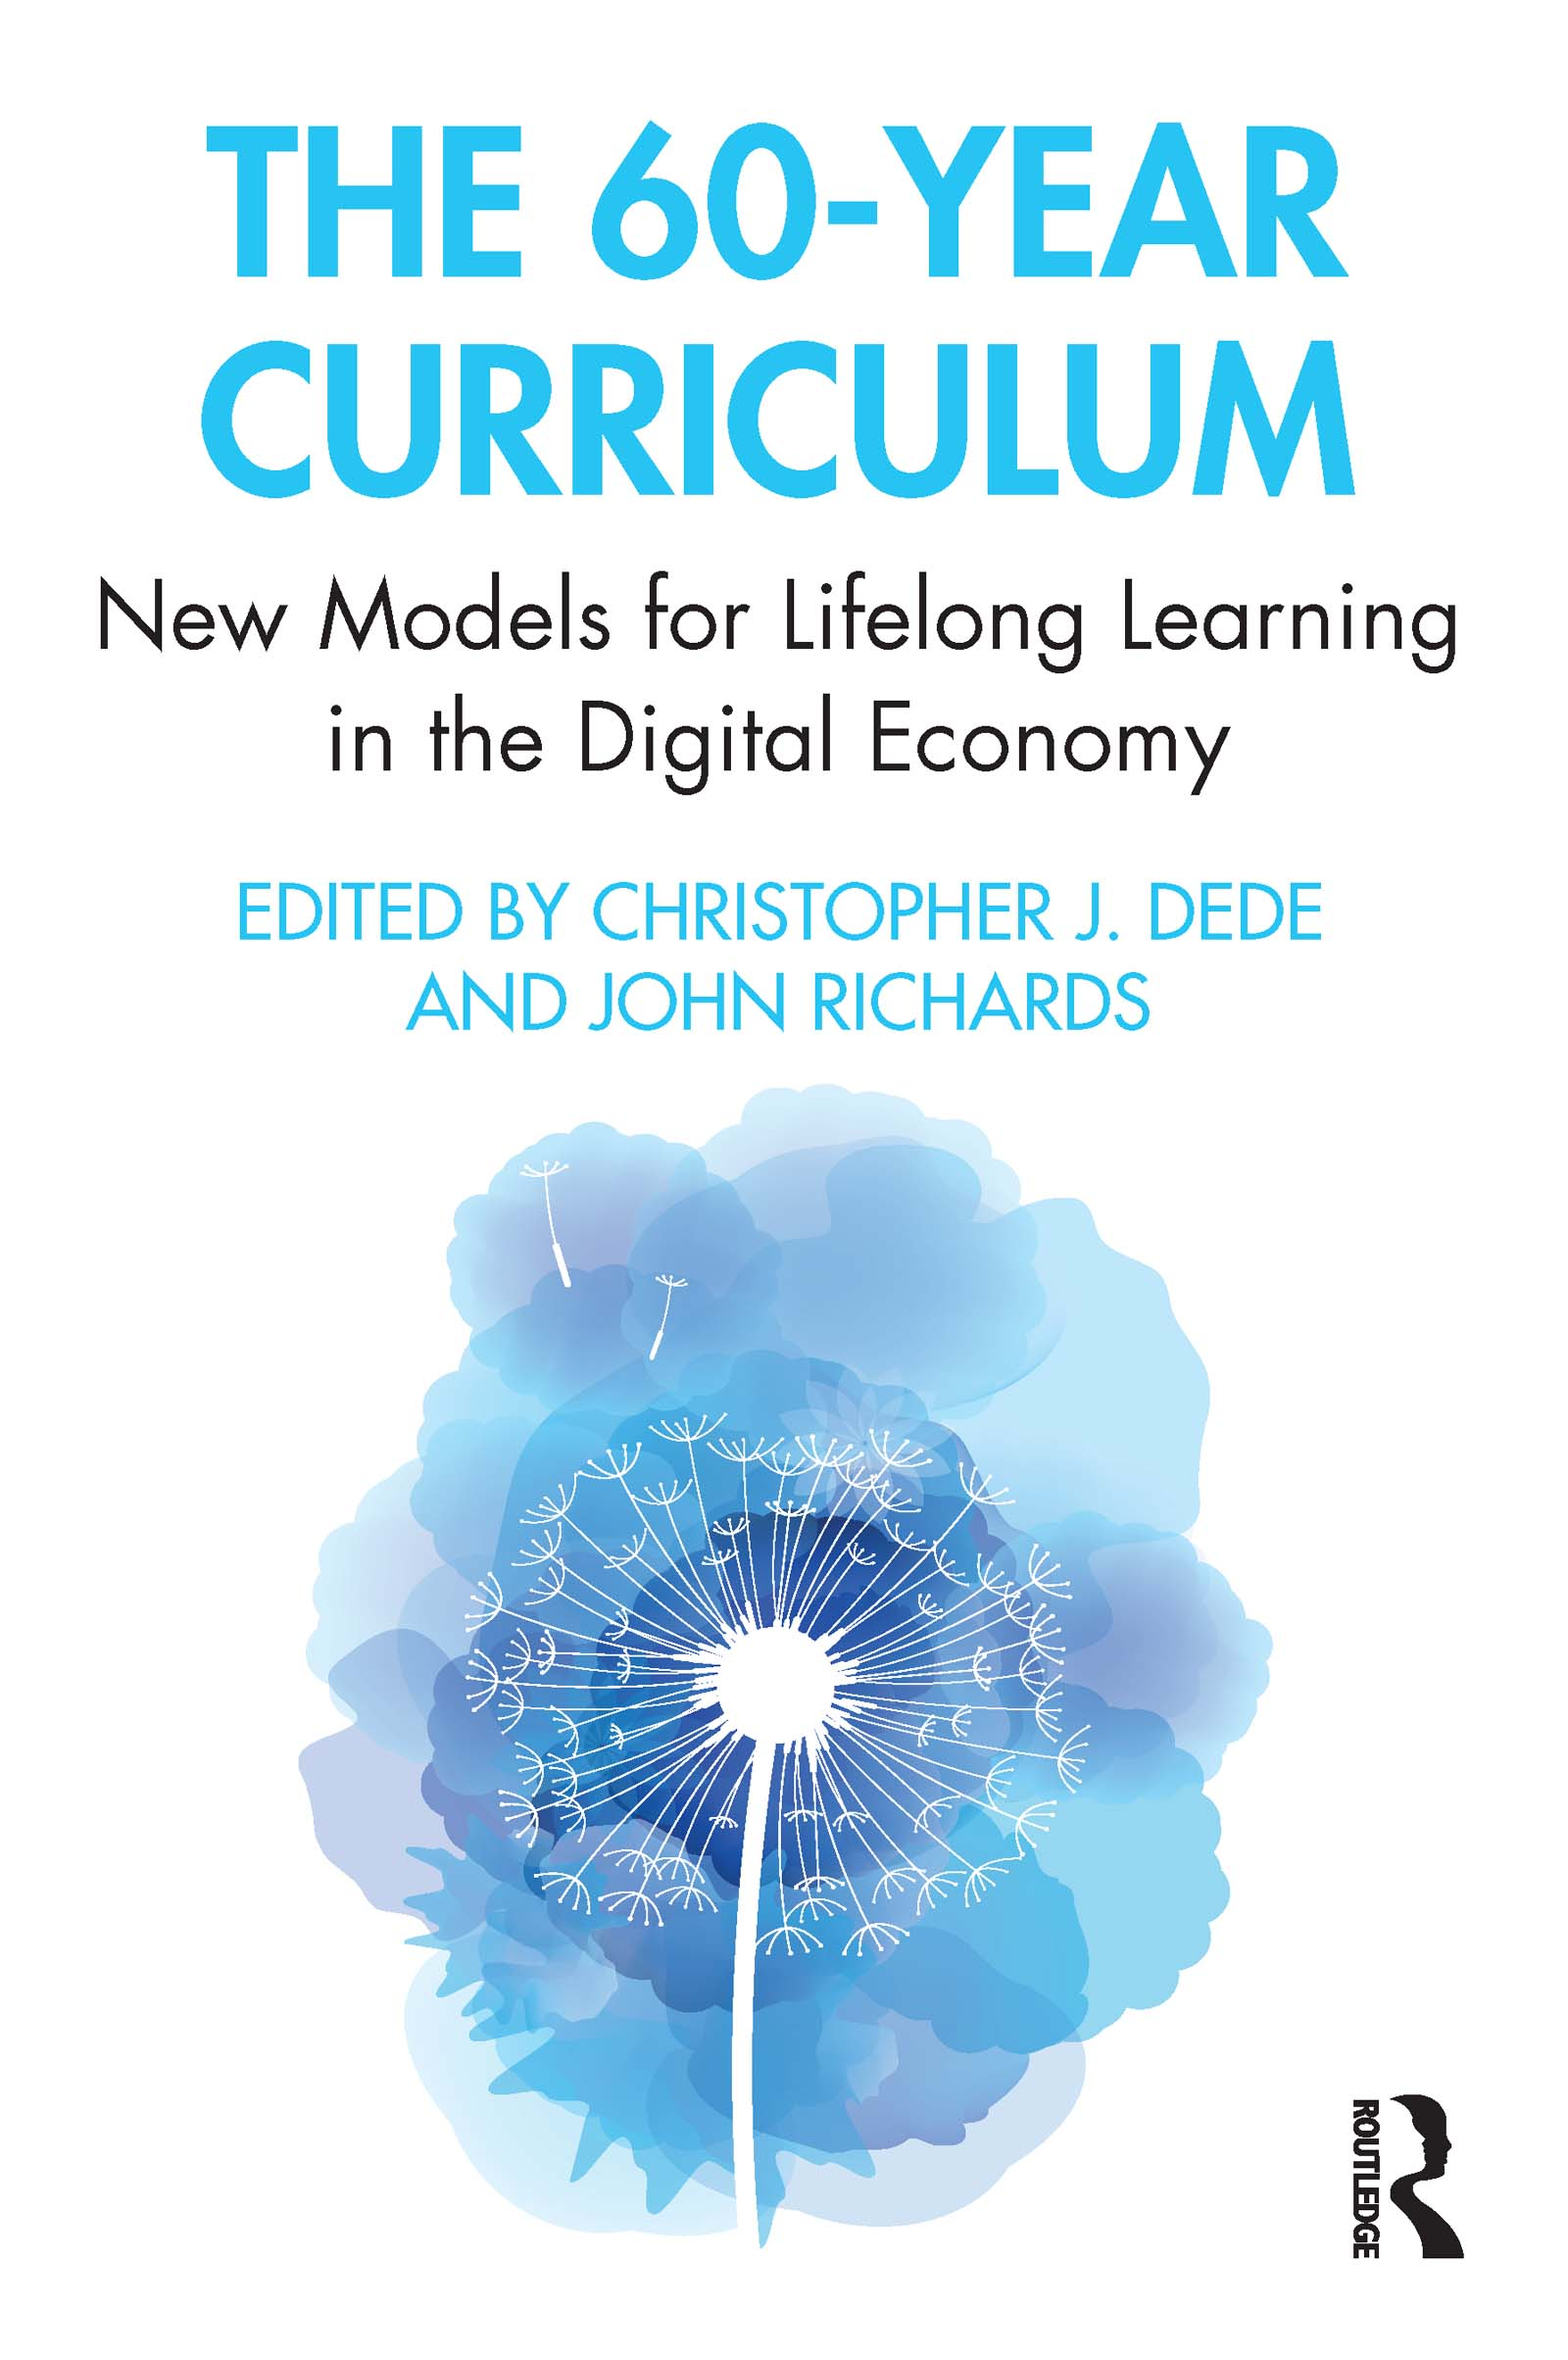 The 60-Year Curriculum